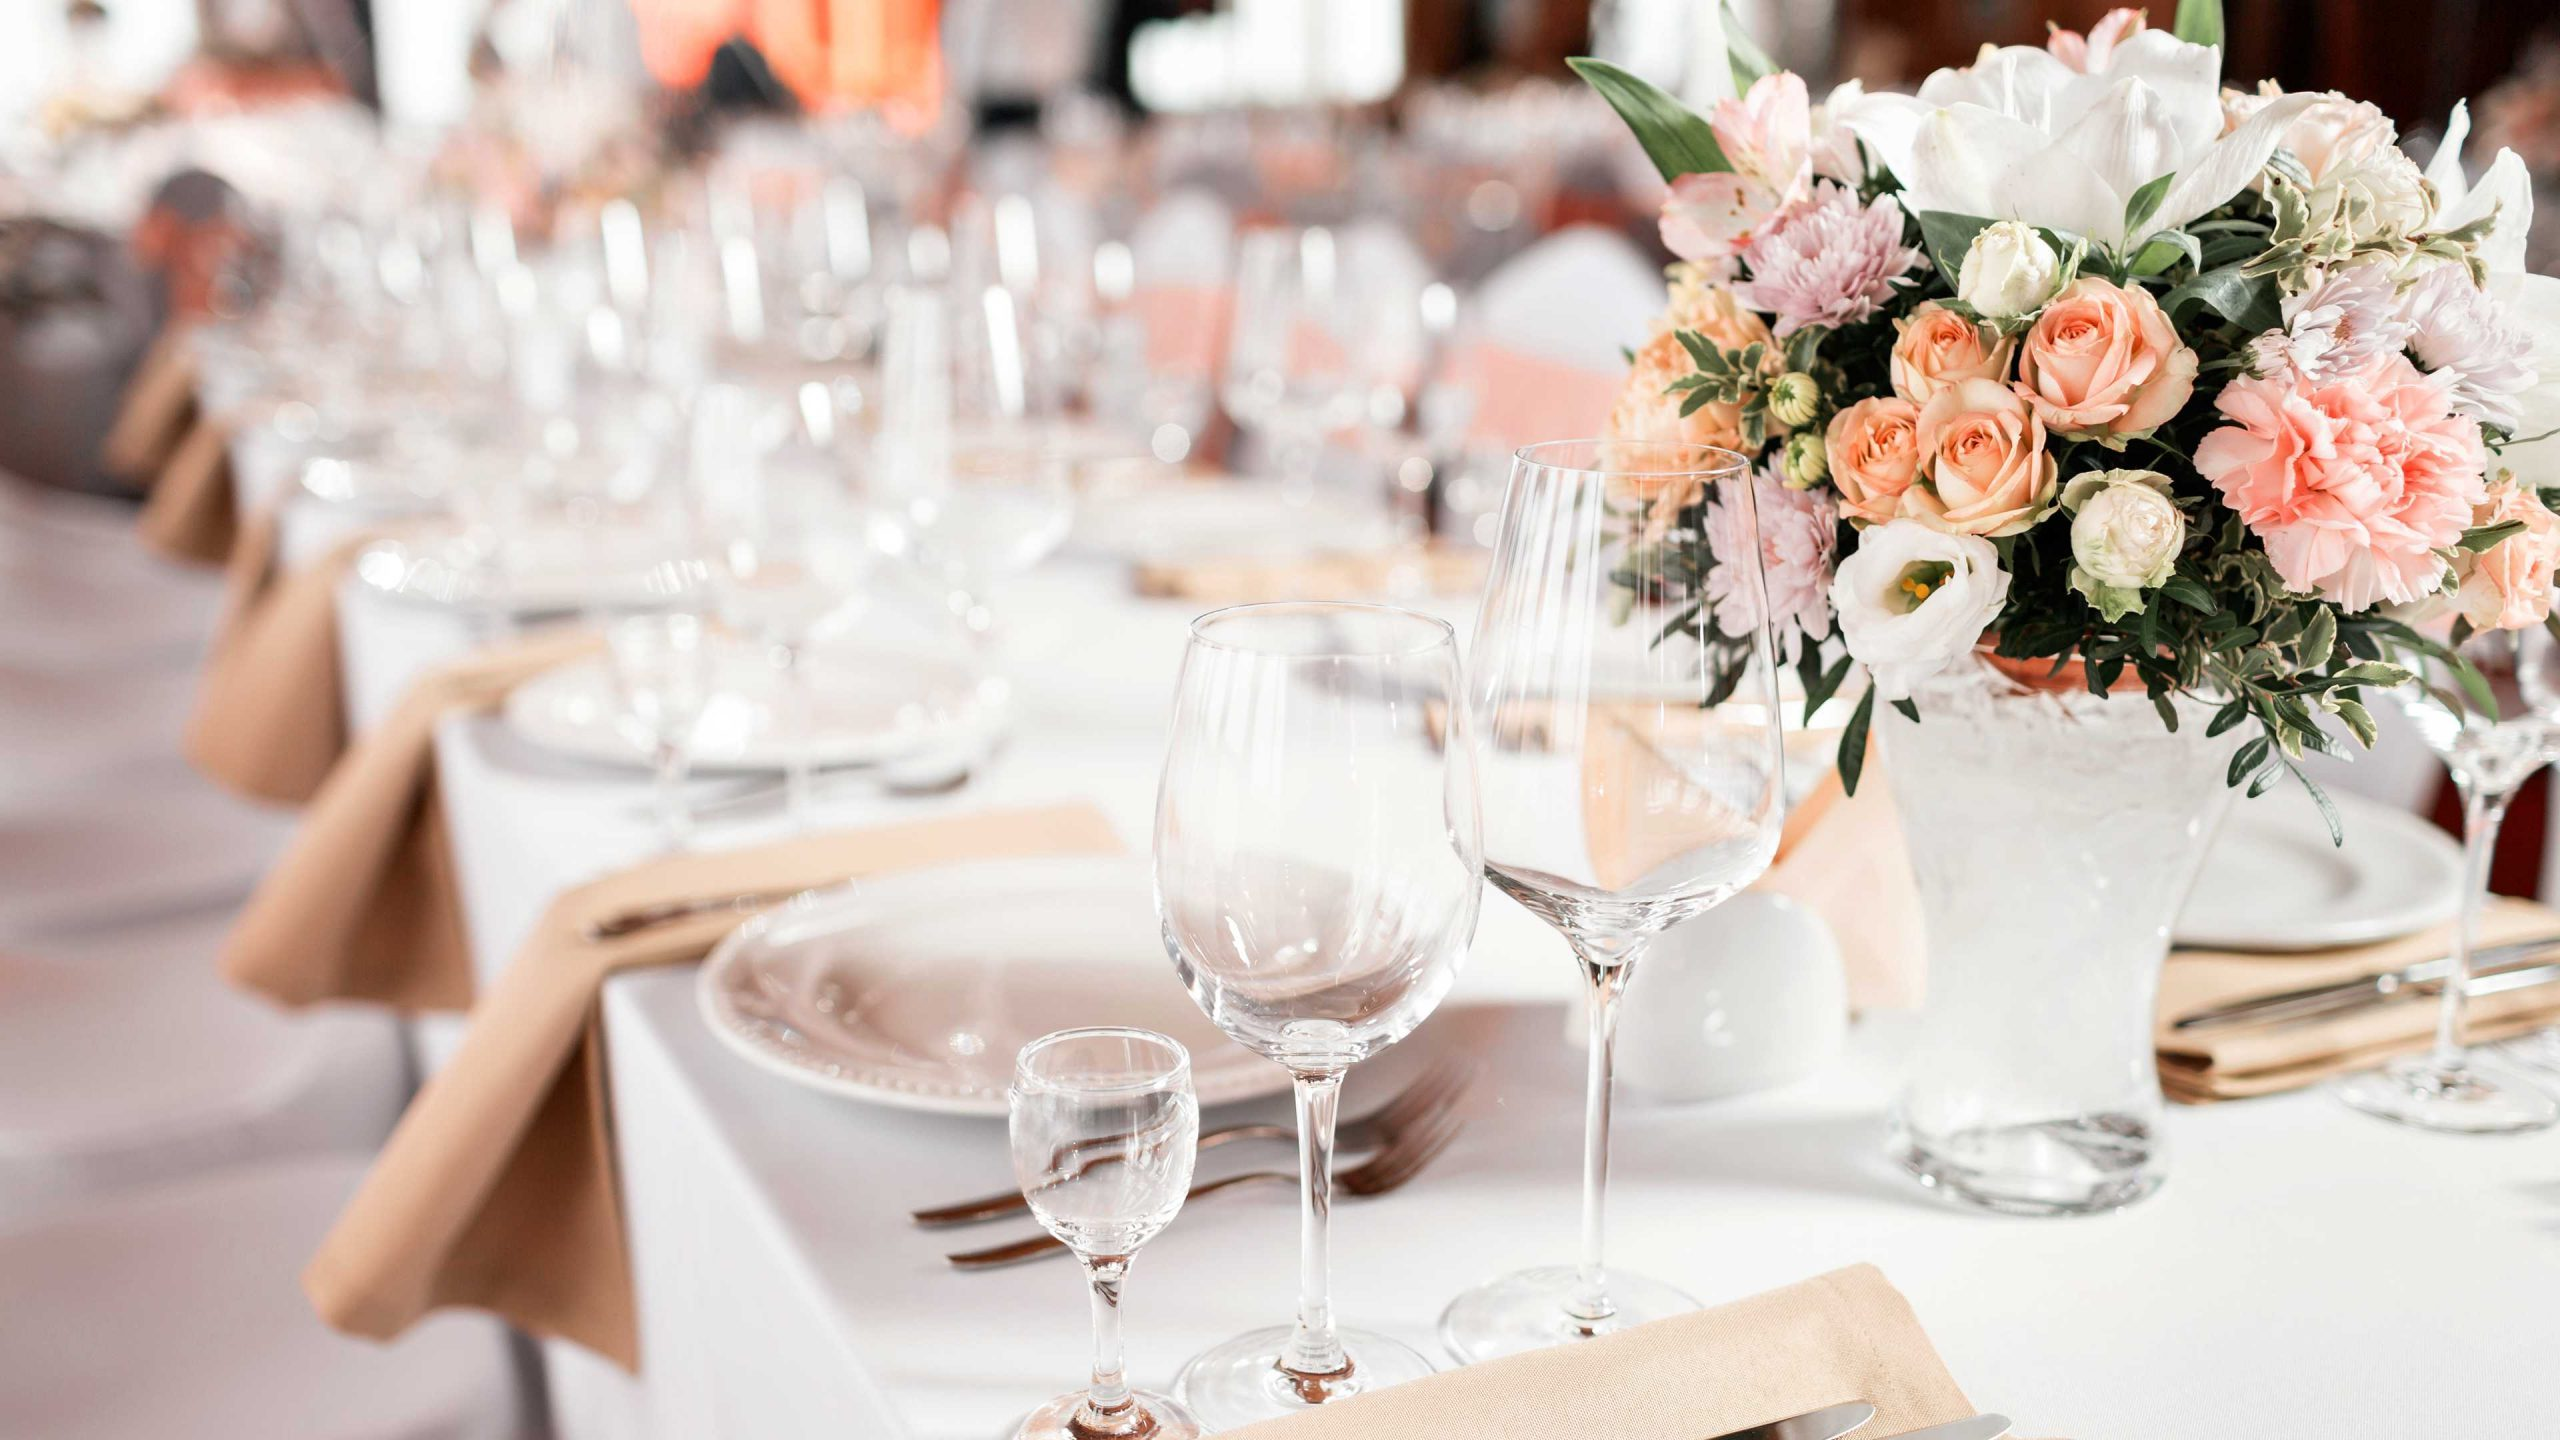 Wedding reception table setting.